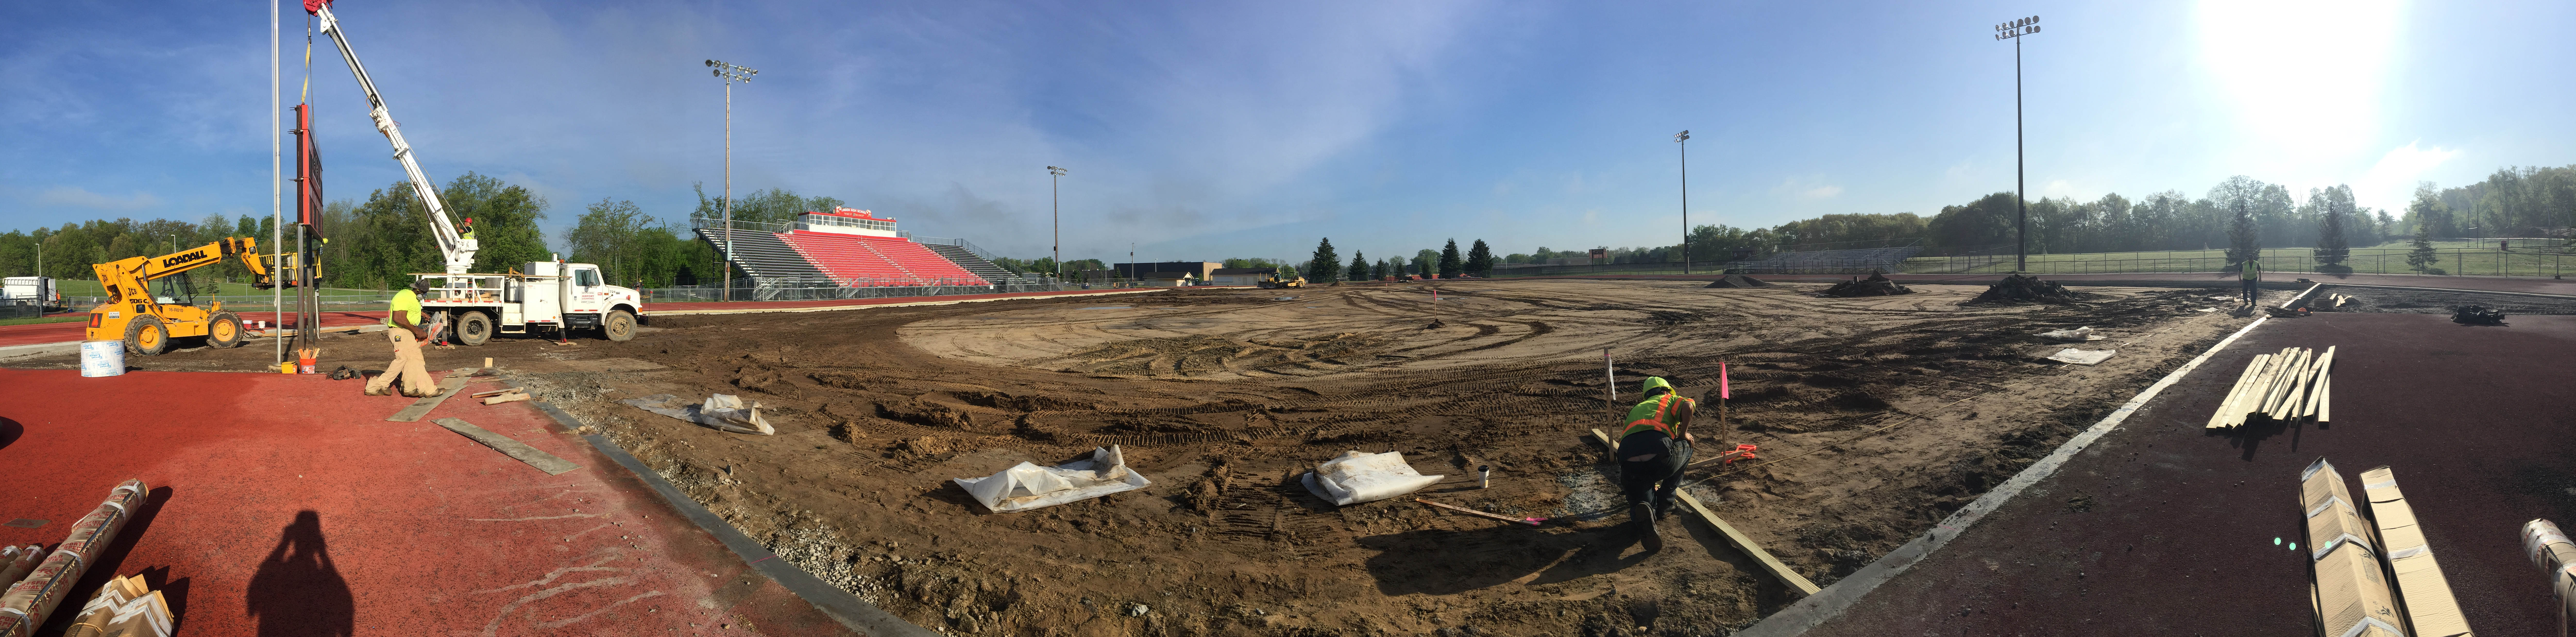 Construction Continues for the Field, Scoreboard, High Jump, Pole Vault and Long Jump!!